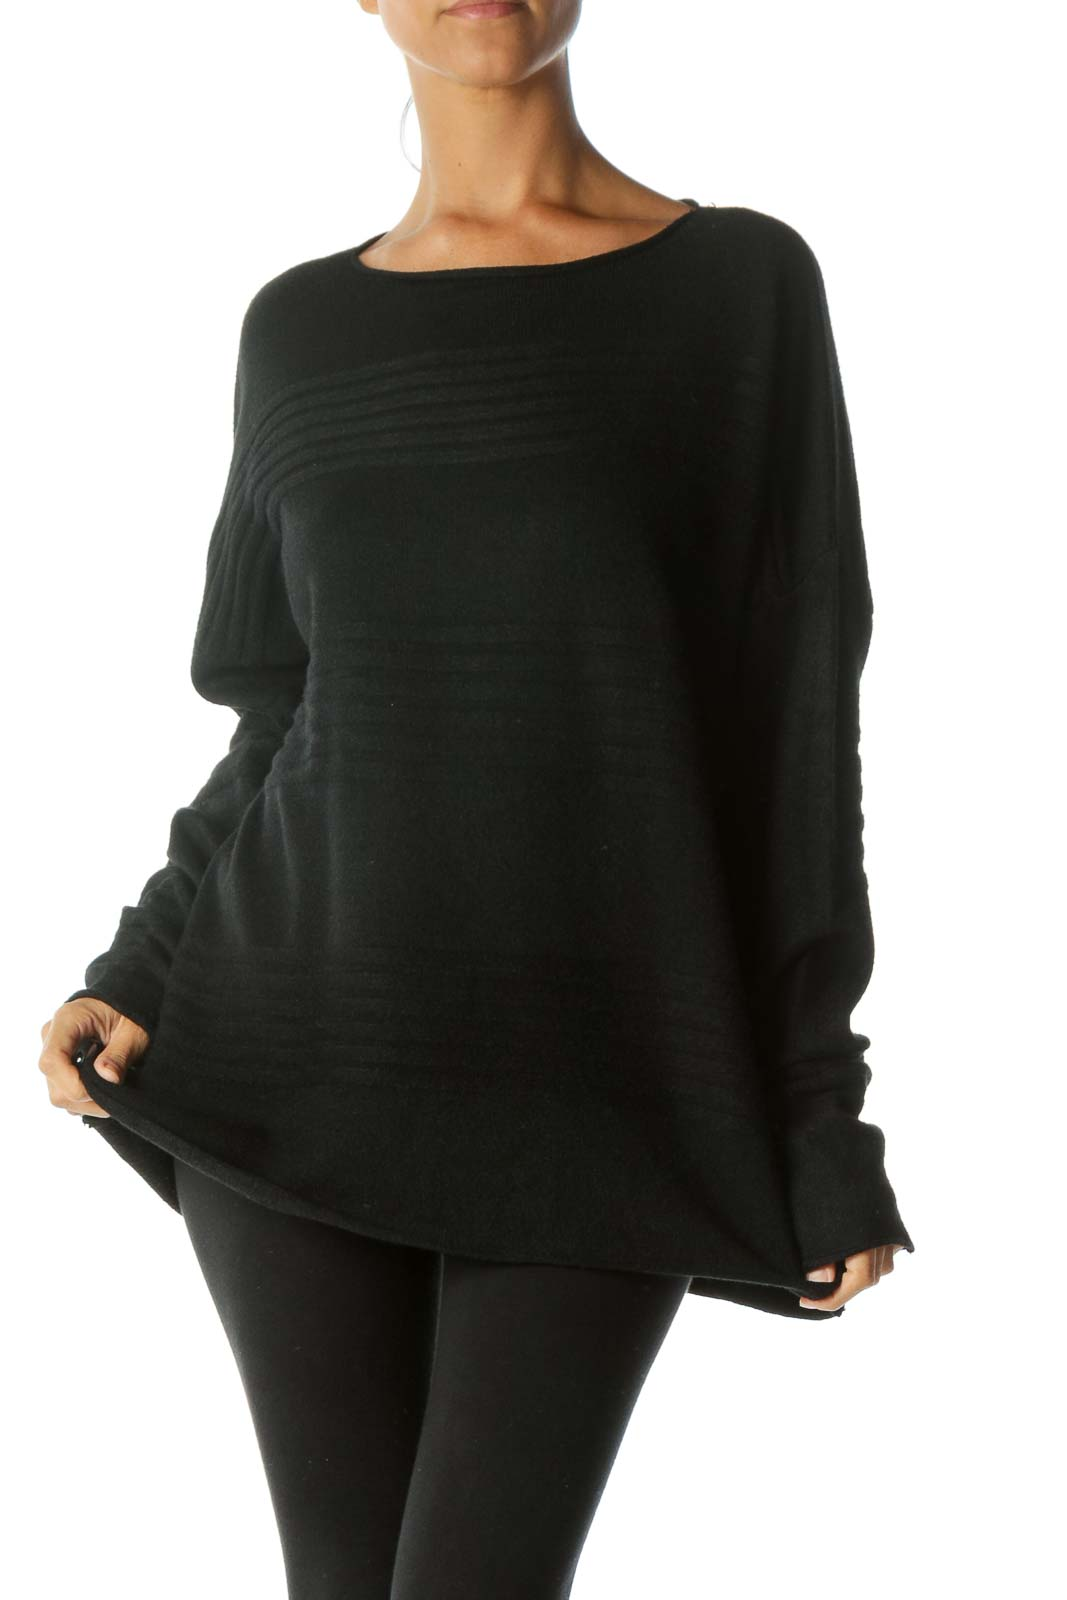 Black Textured Cashmere Blend Soft Stretch Sweater